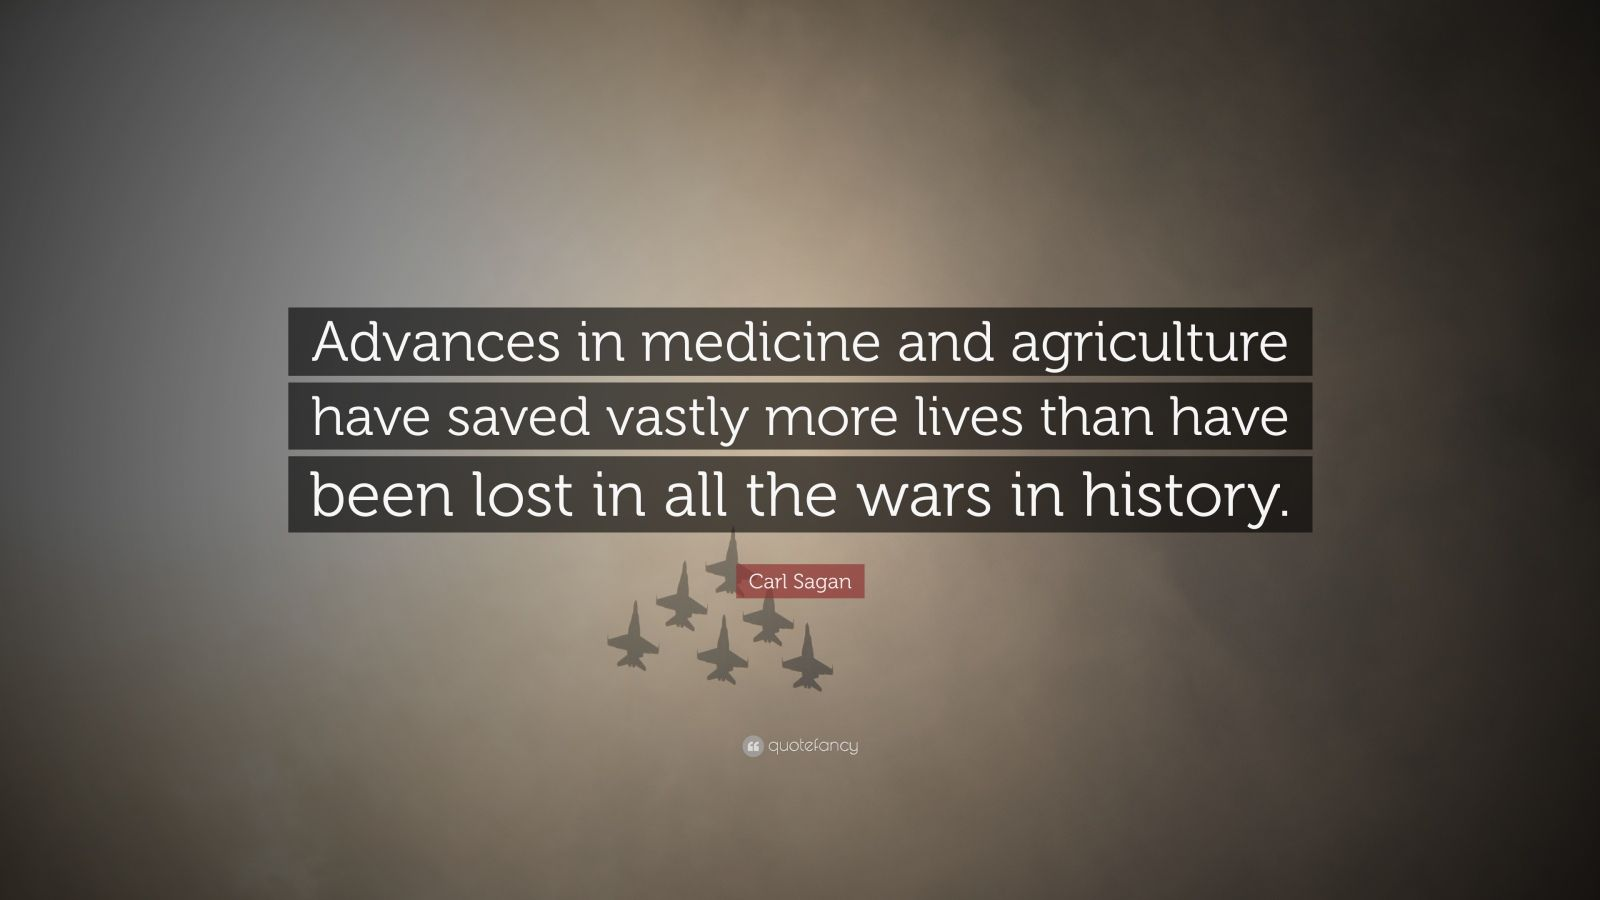 """Carl Sagan Quote: """"Advances in medicine and agriculture have saved vastly more lives than have been lost in all the wars in history."""""""